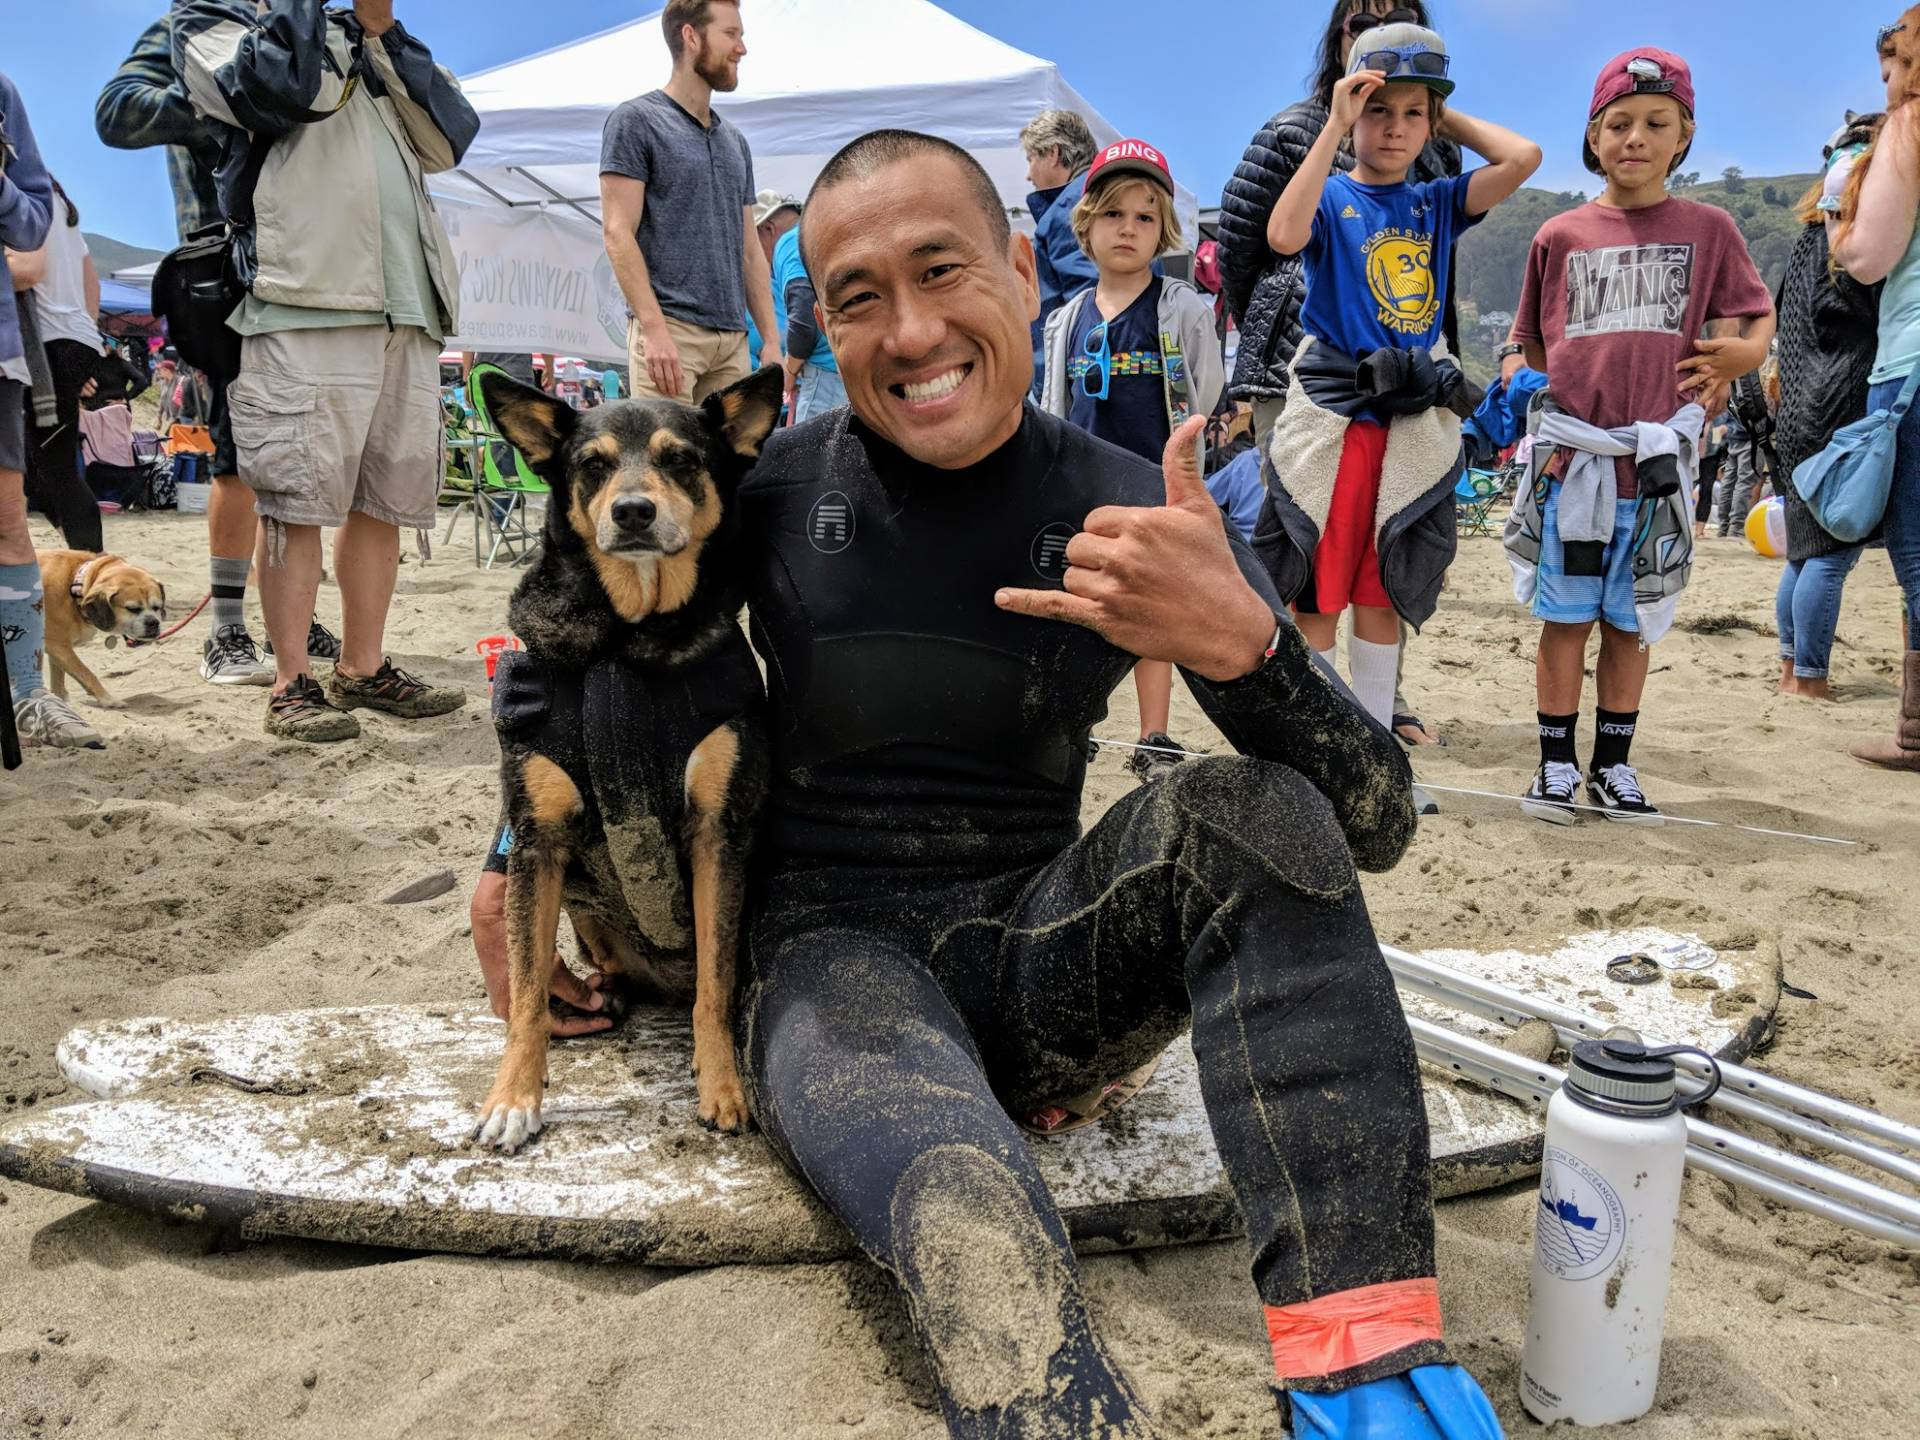 """Michael Uy and his dog Abbie Girl are here from Santa Monica. Abbie is the returning champ and also has the Guinness World Record for longest wave surfed by a dog - a total of 107 meters. """"You can really tell the bond you have with your dog when you go out surfing together."""""""